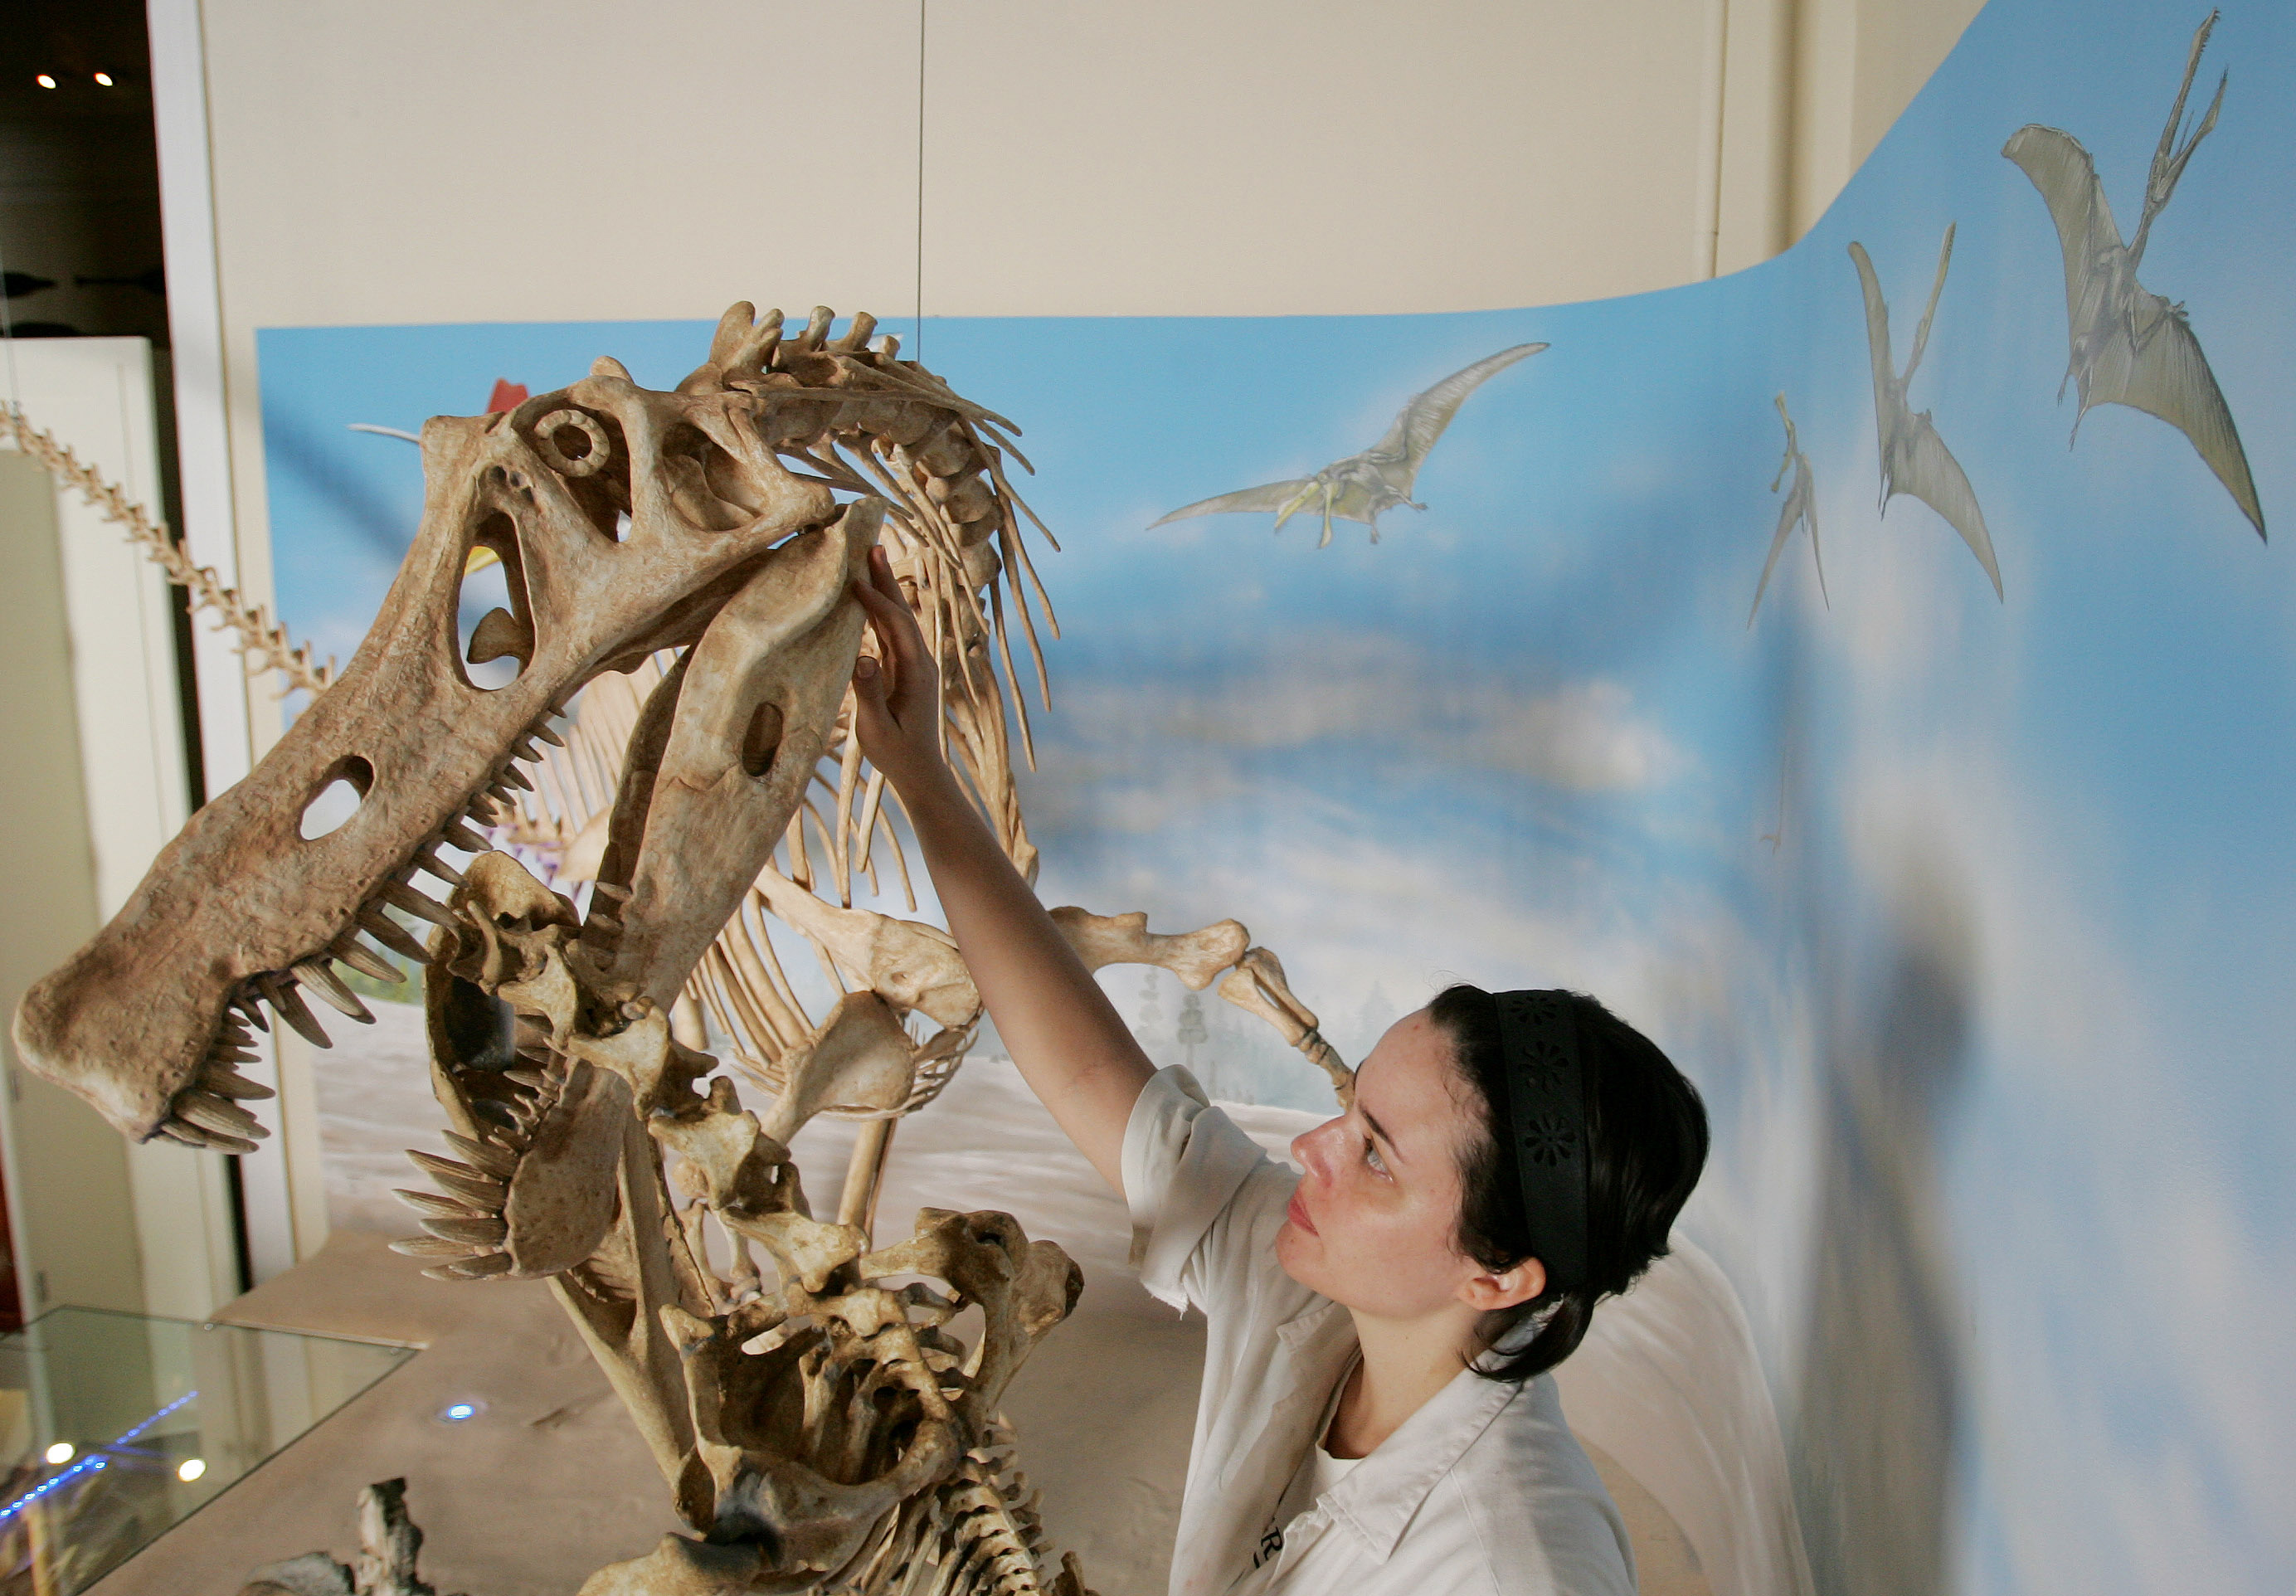 A woman works on a replica of the Angaturama Limai's skeleton, the largest carnivorous dinosaur found in Brazil, at the National Museum in Rio de Janeiro, Thursday, May 14, 2009..